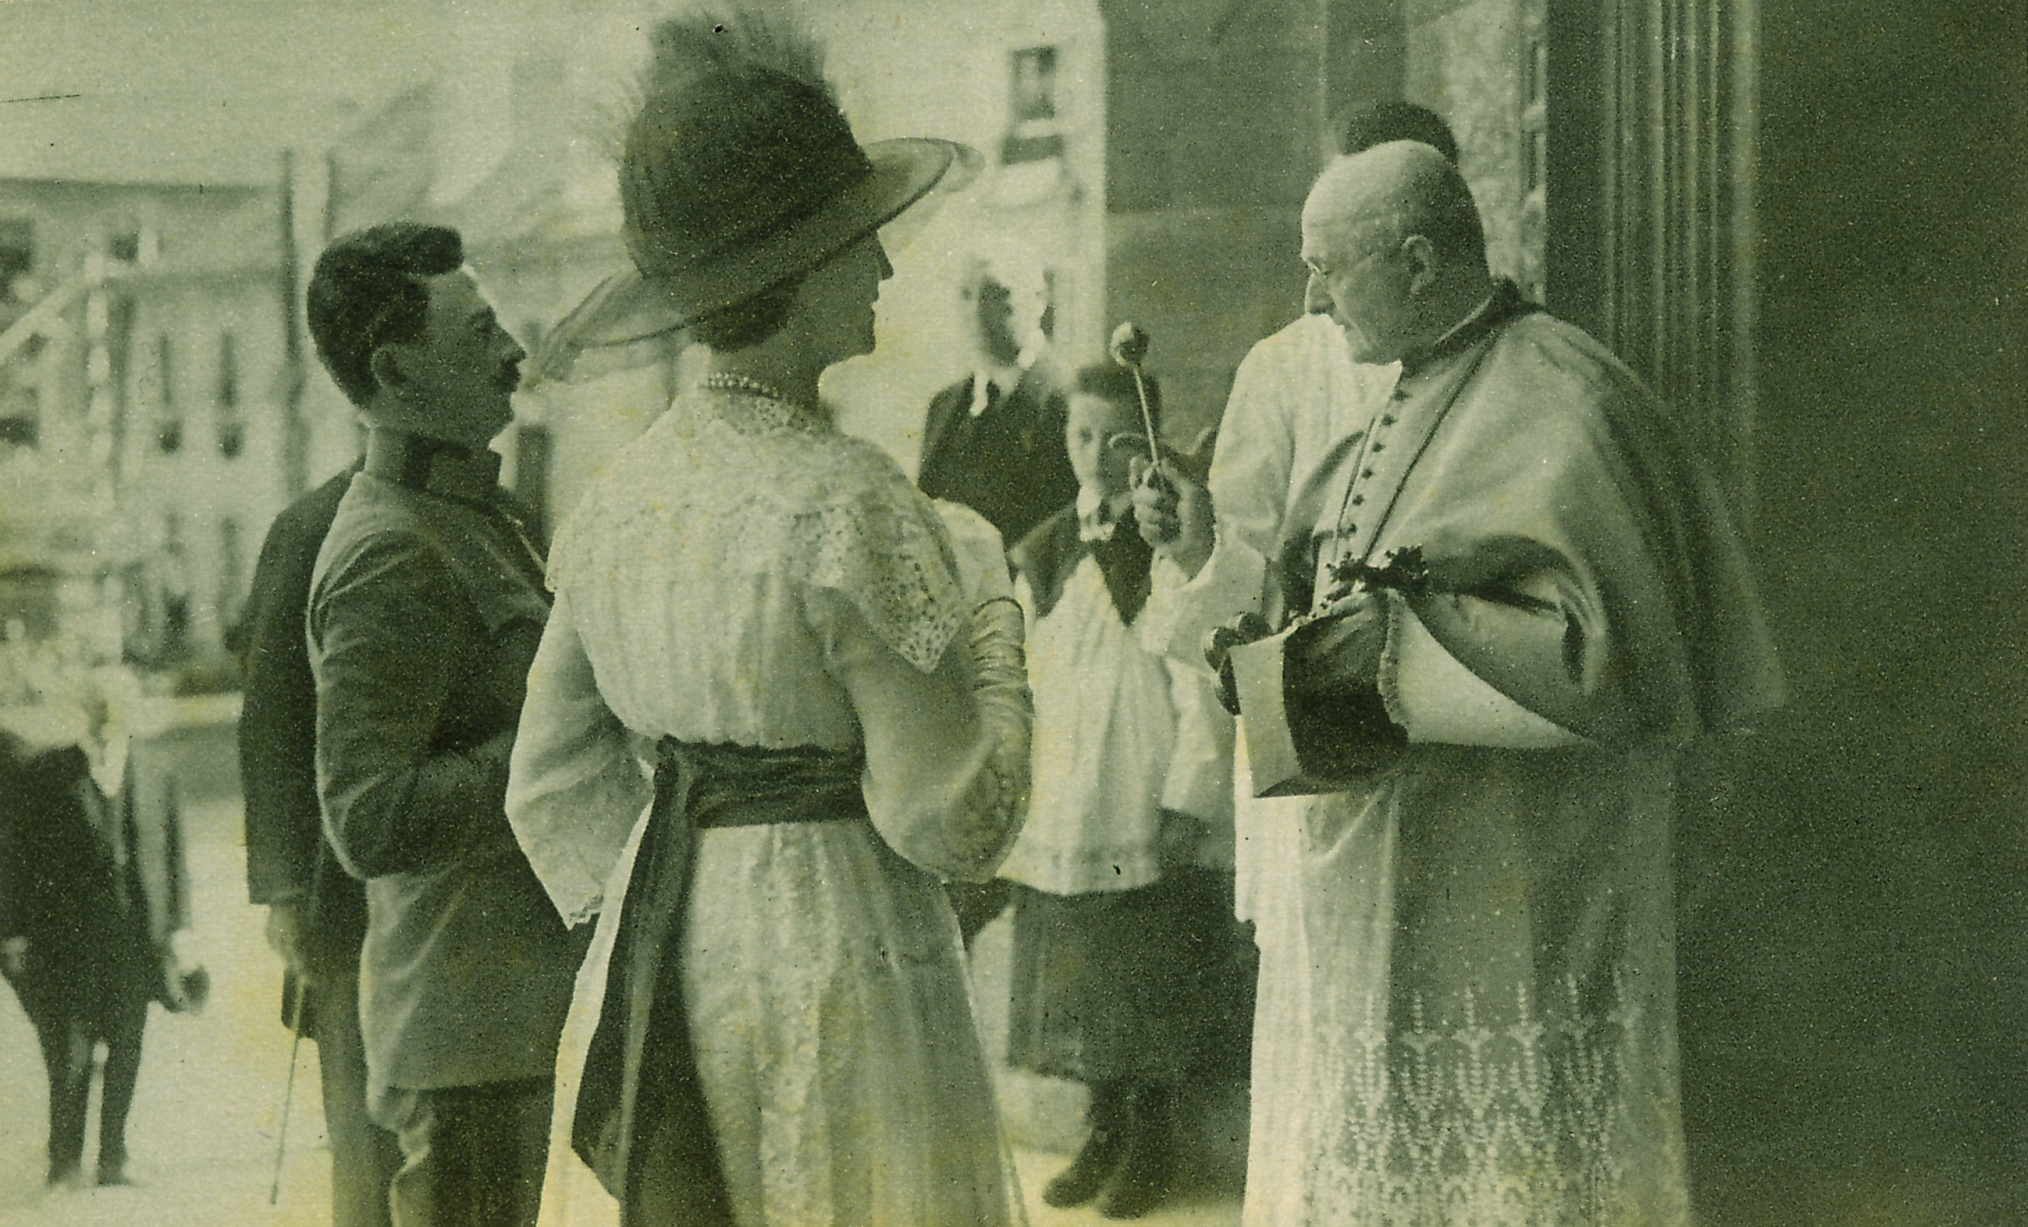 While visiting troops in   Bratislava,Emperor Karl and Empress Zita visited S  aint Martin's Cathedral where they received a blessing from the bishop.ca. 1916